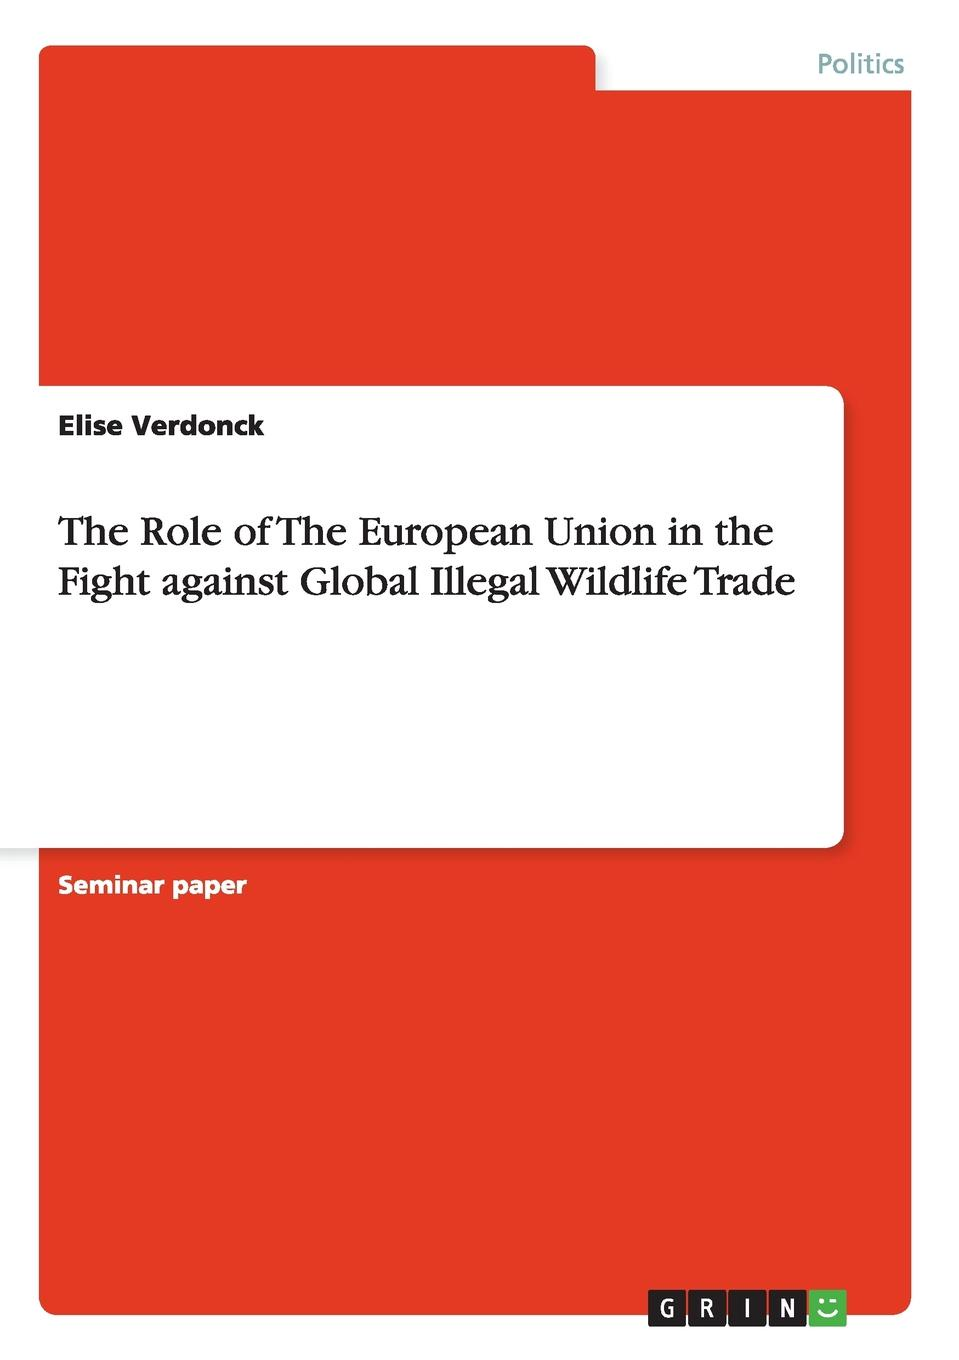 Elise Verdonck The Role of The European Union in the Fight against Global Illegal Wildlife Trade matthias strohmayer posting of workers within the european union the enforcement directive 2014 67 eu and shortfalls of existing legislation